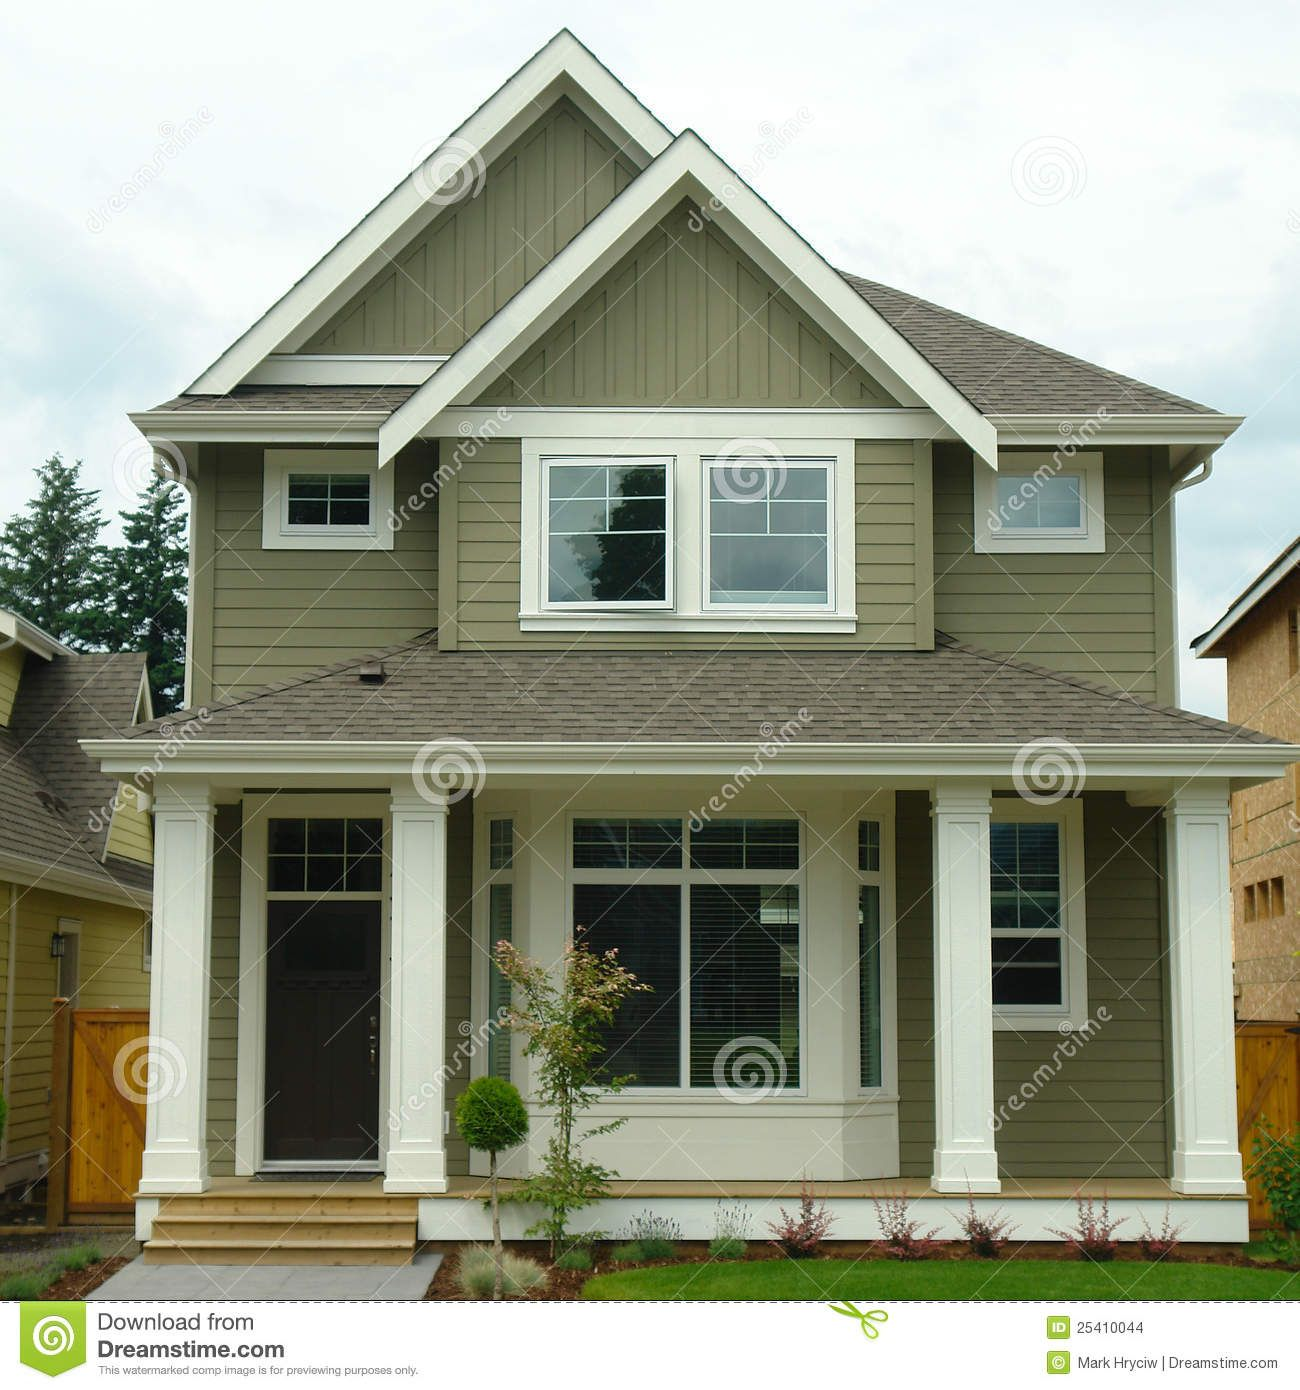 Forest green exterior house color new home house for Building exterior colour